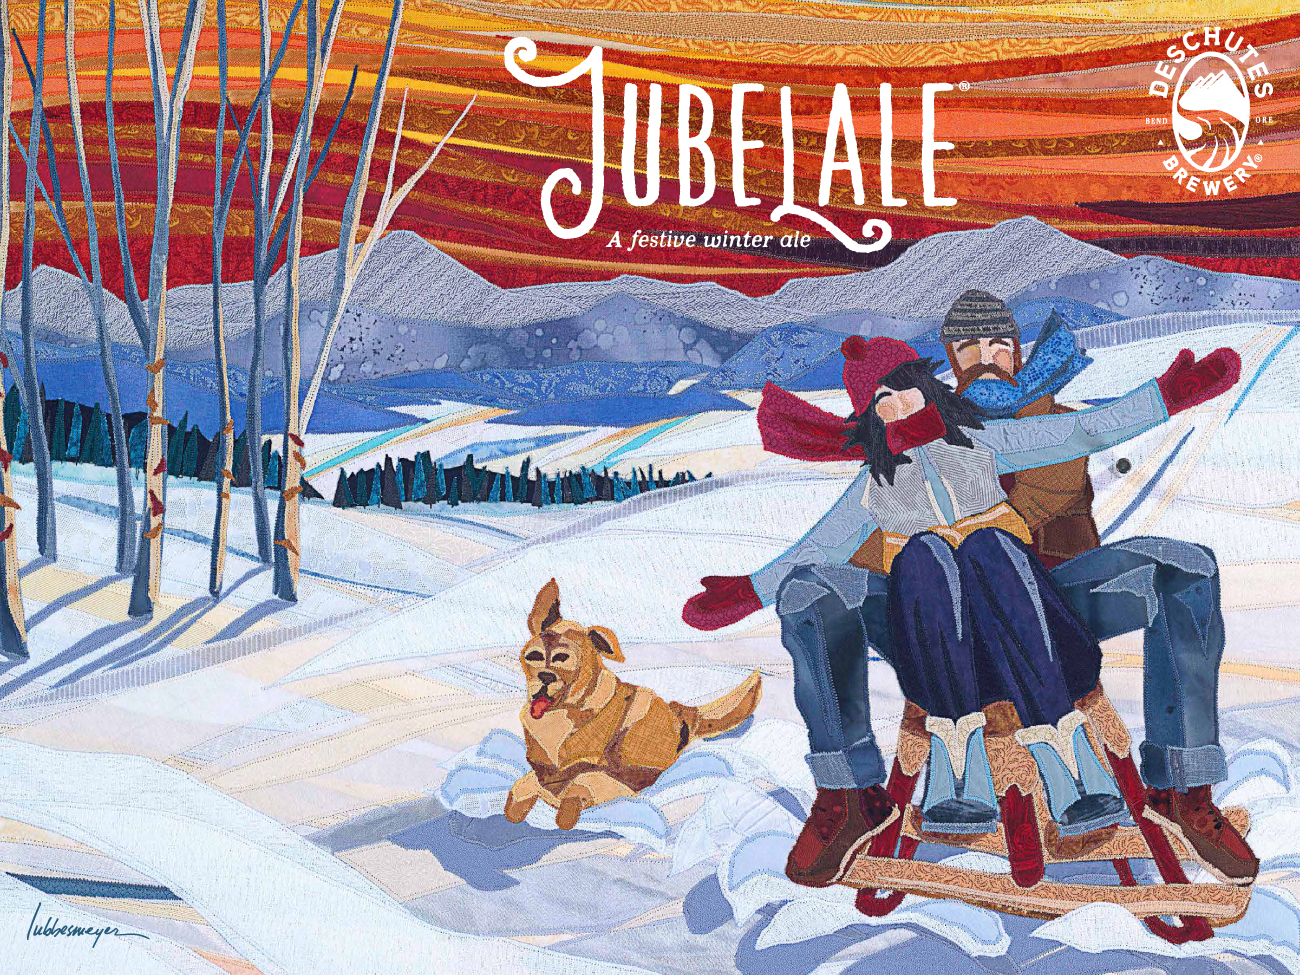 Deschutes Brewery Jubelale Label